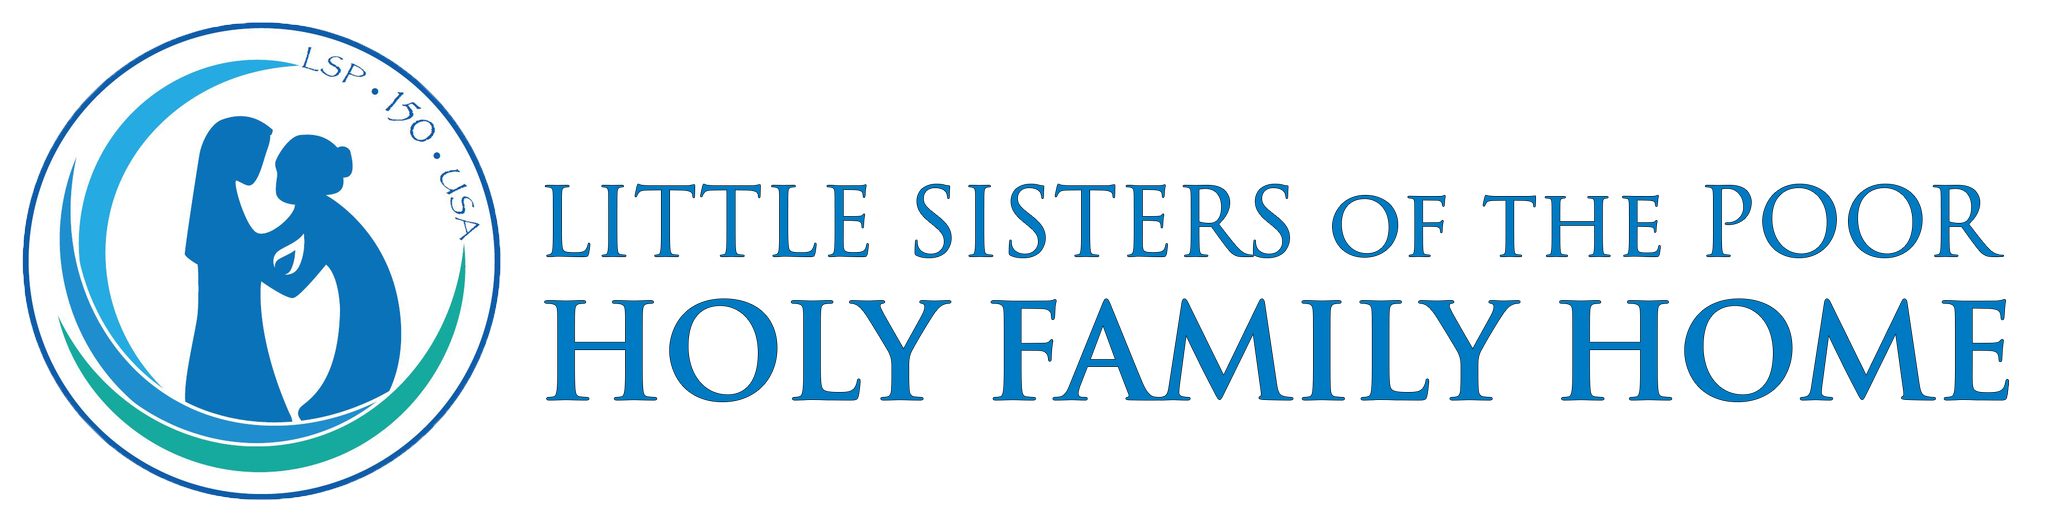 Little Sisters of the Poor Philadelphia